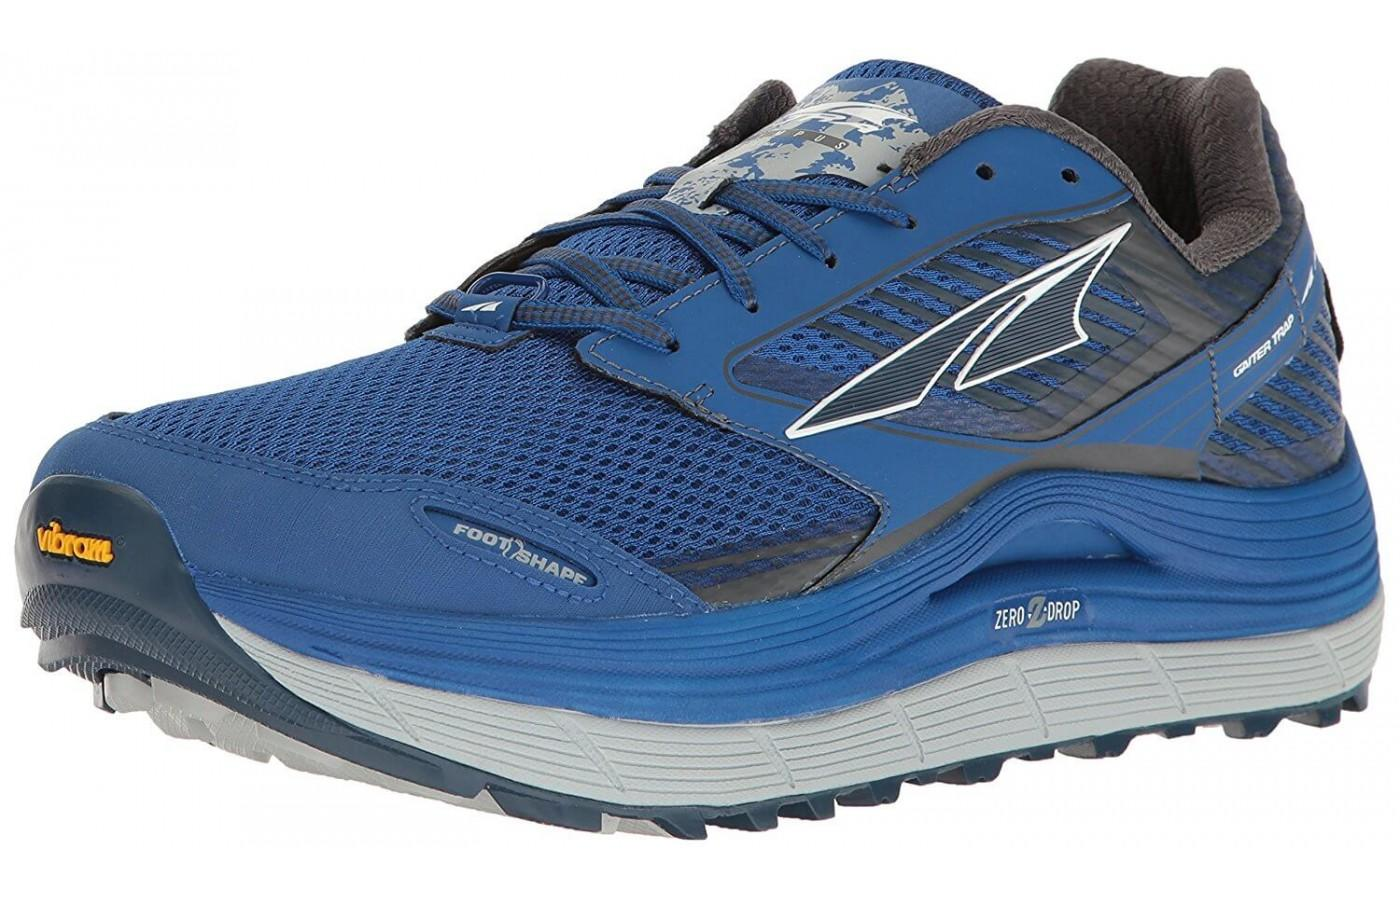 Altra Olympus 2.5 features a wide toe box